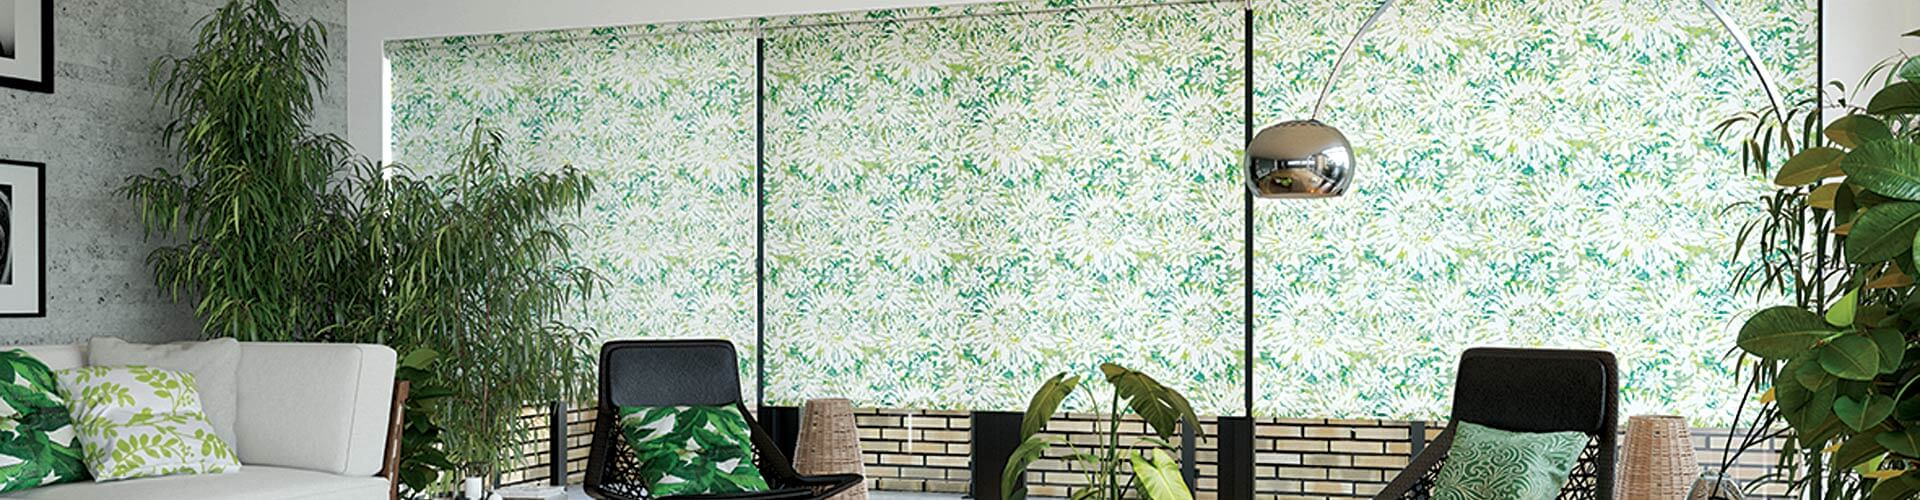 Domestic Roller Blinds available in a range of styles and colours